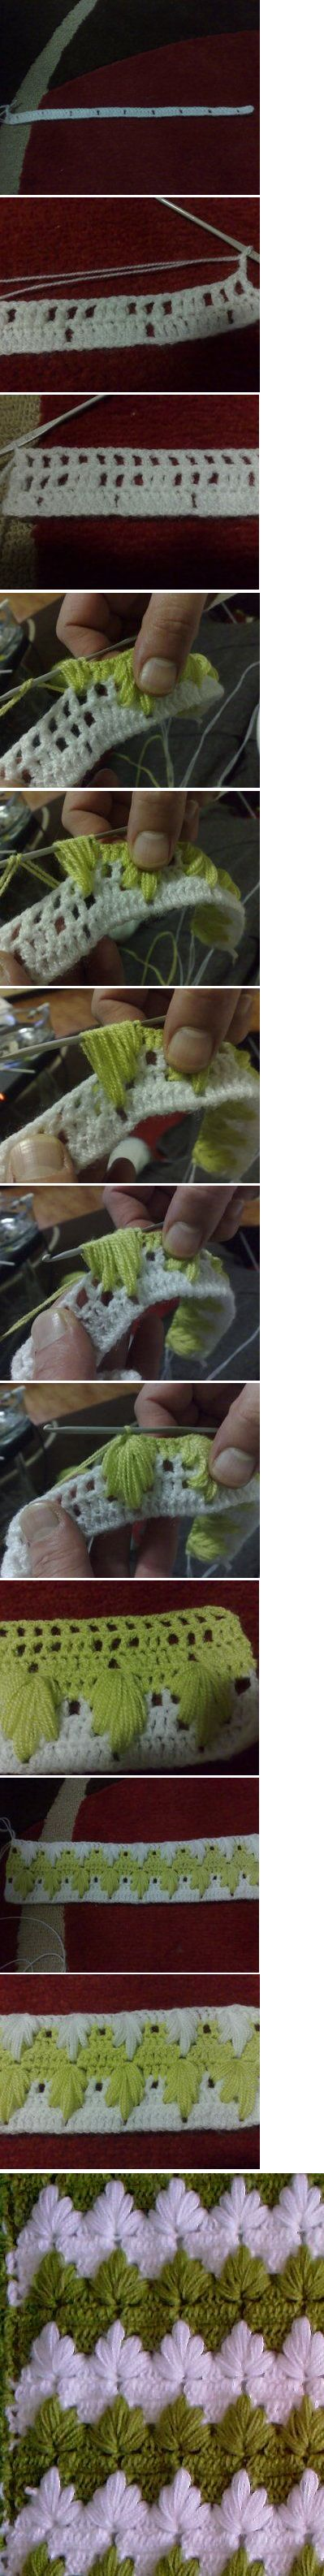 Beautiful crochet anyone know the stitch?